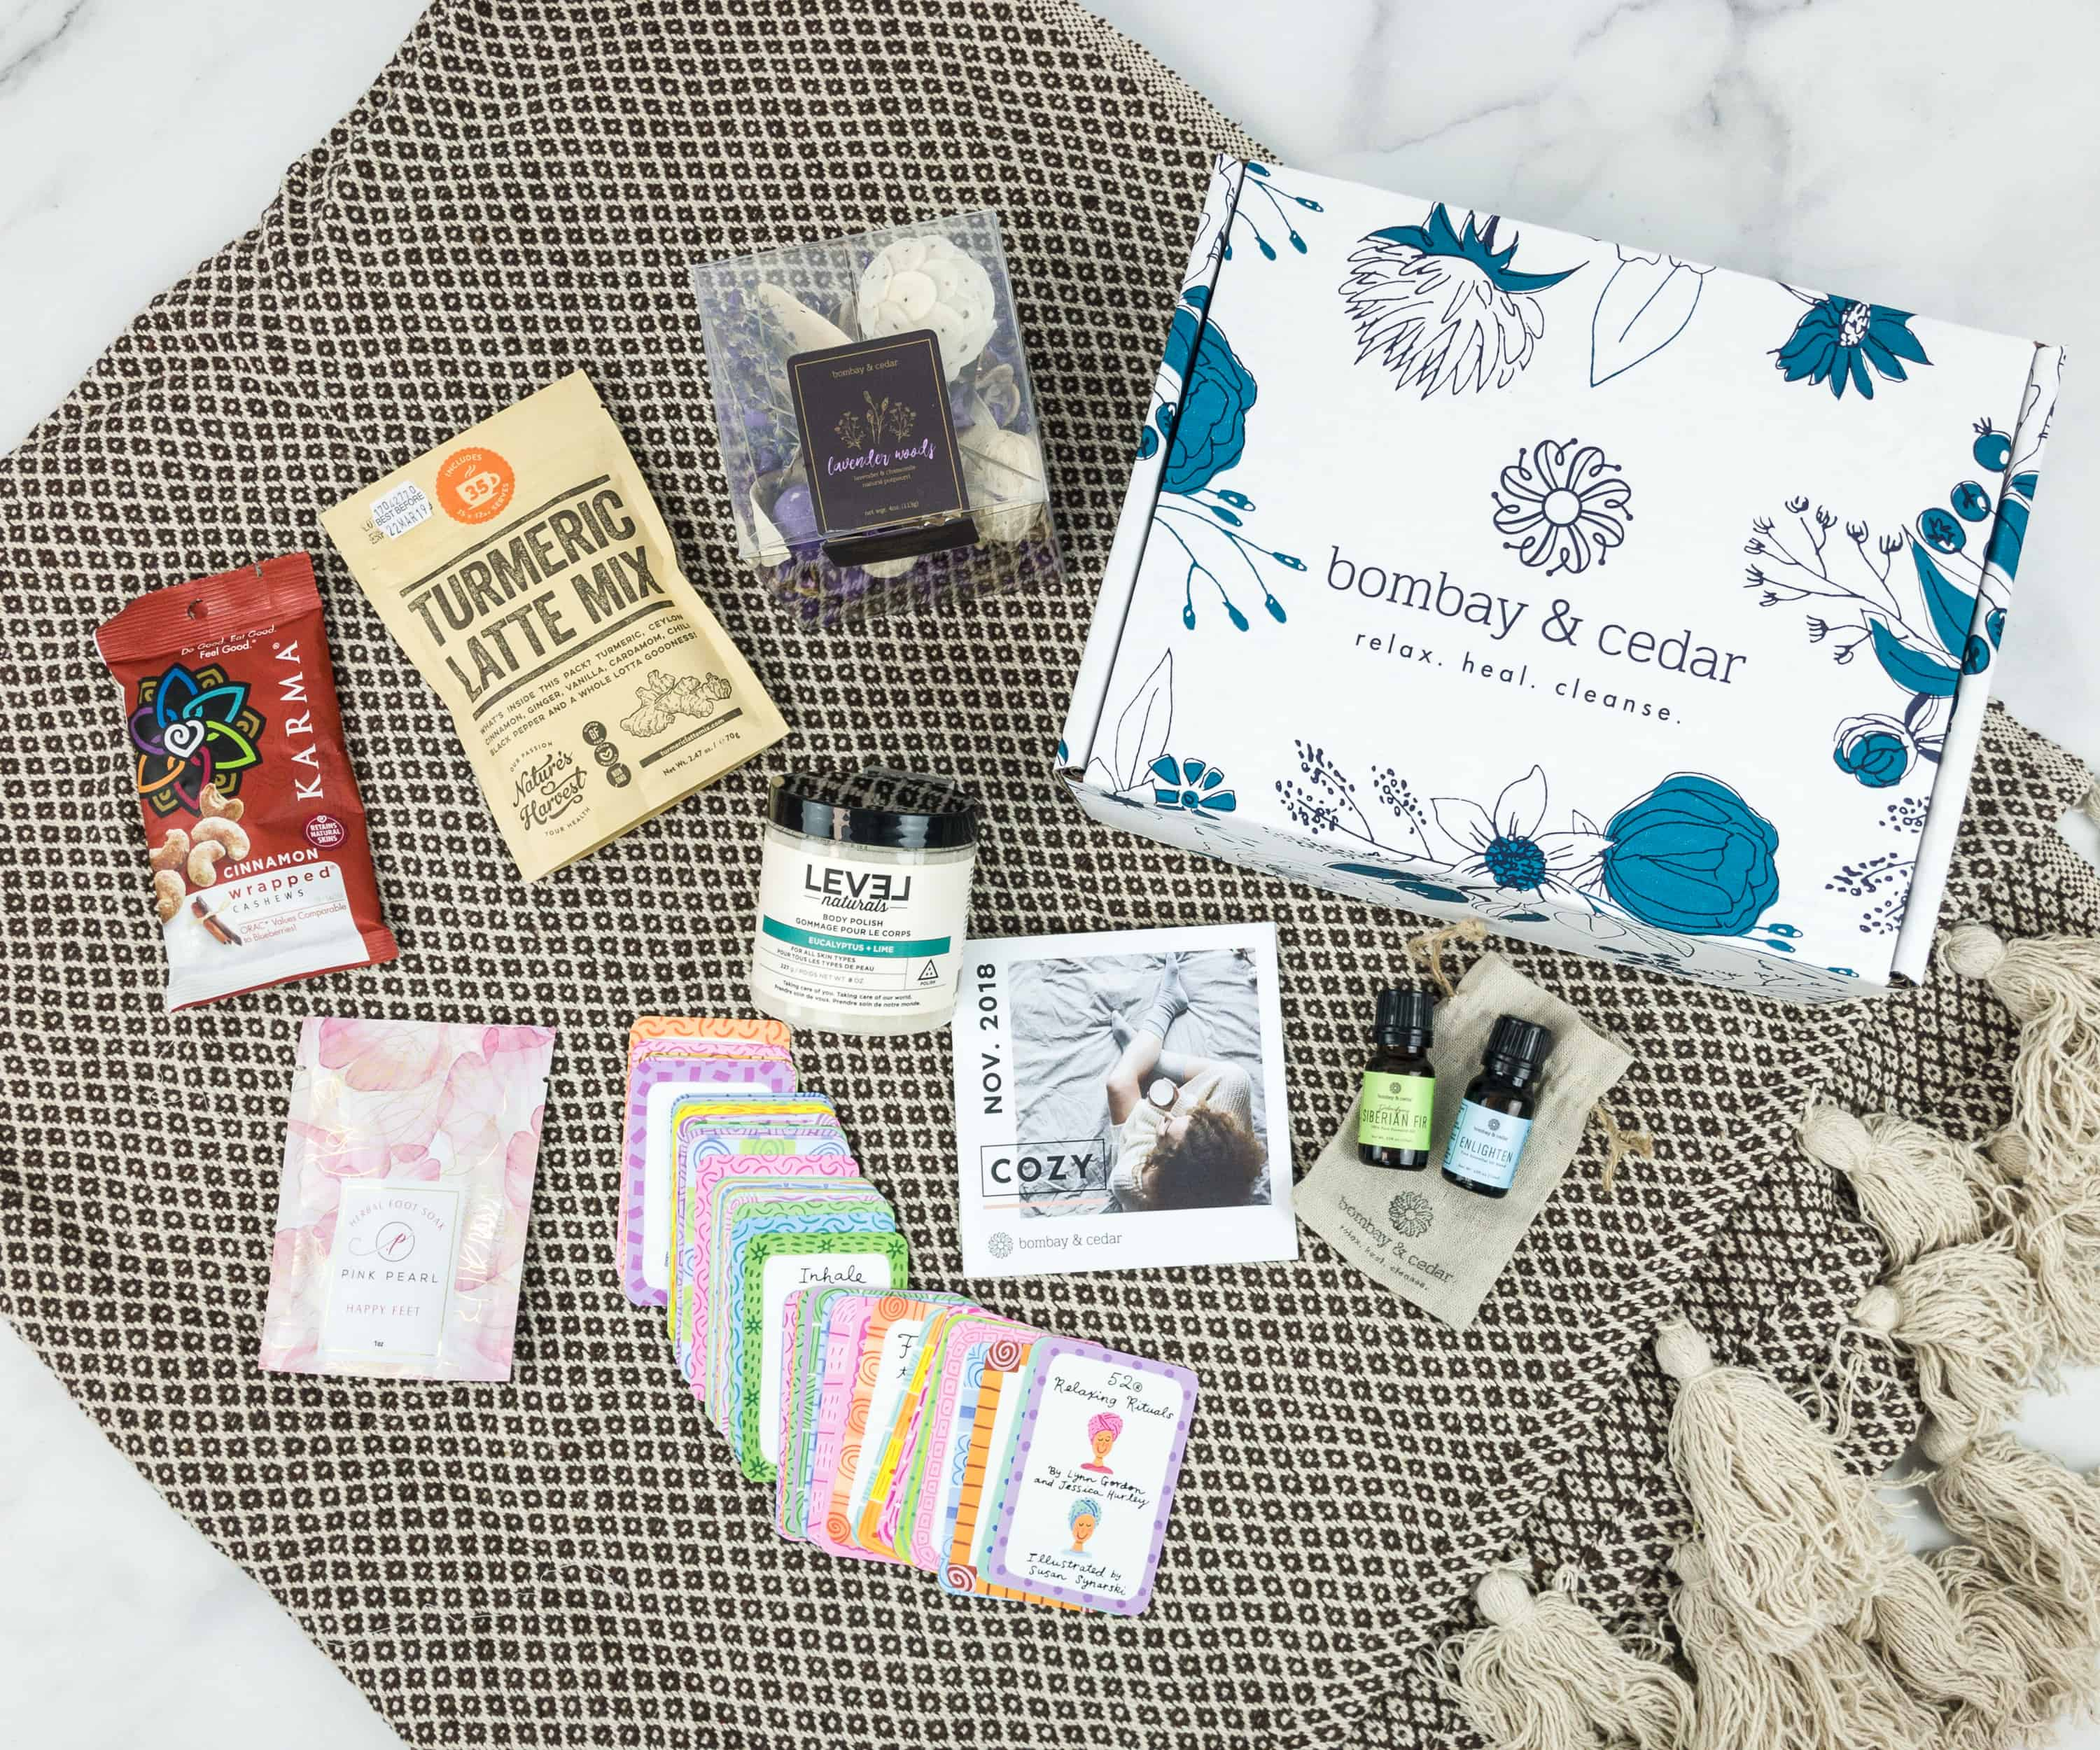 Bombay & Cedar November 2018 Subscription Box Review + Coupon